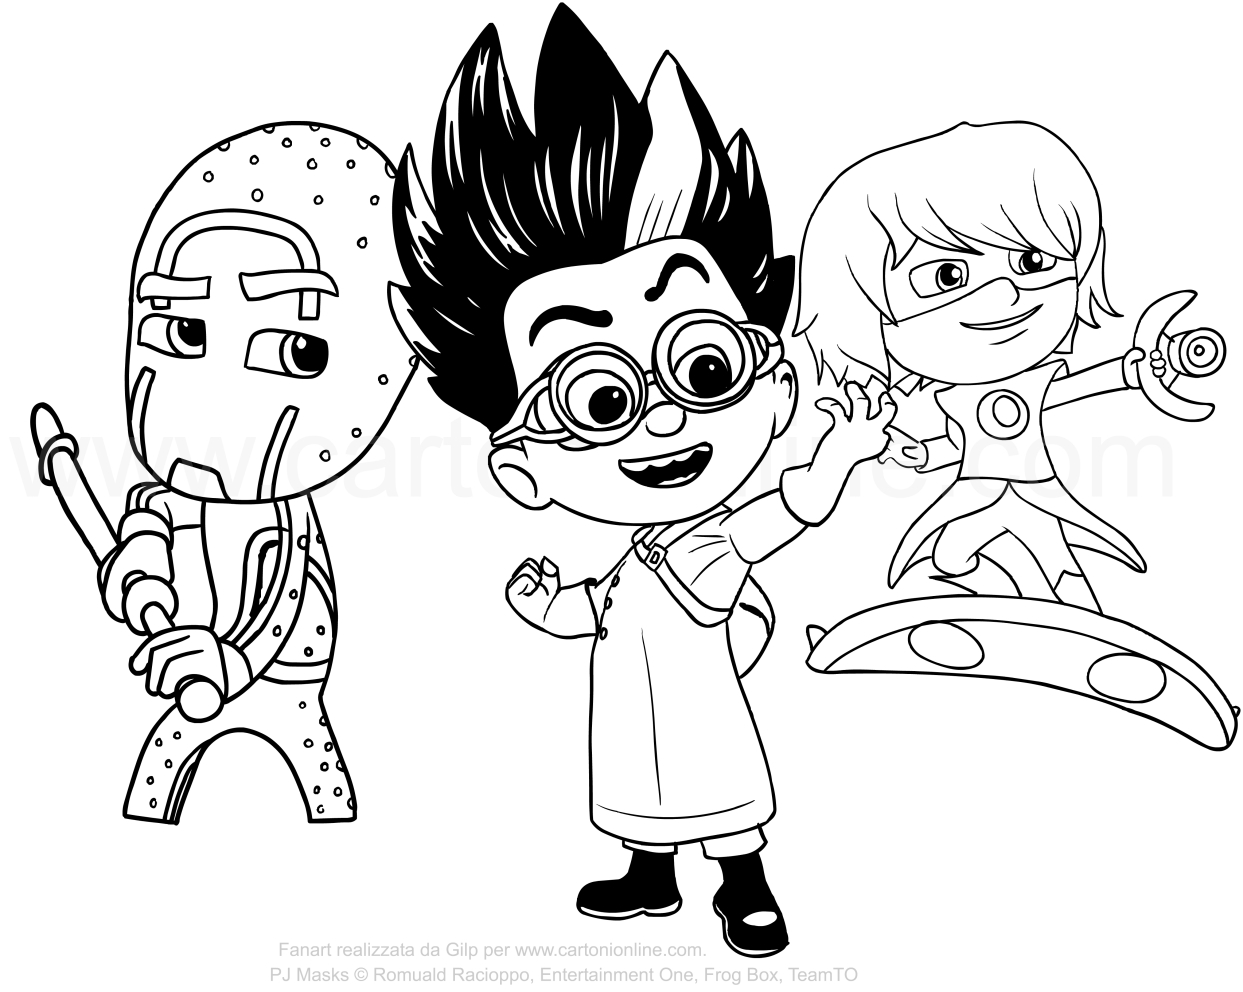 Disegno dei supercattivi pj masks da colorare for Pjmask da colorare